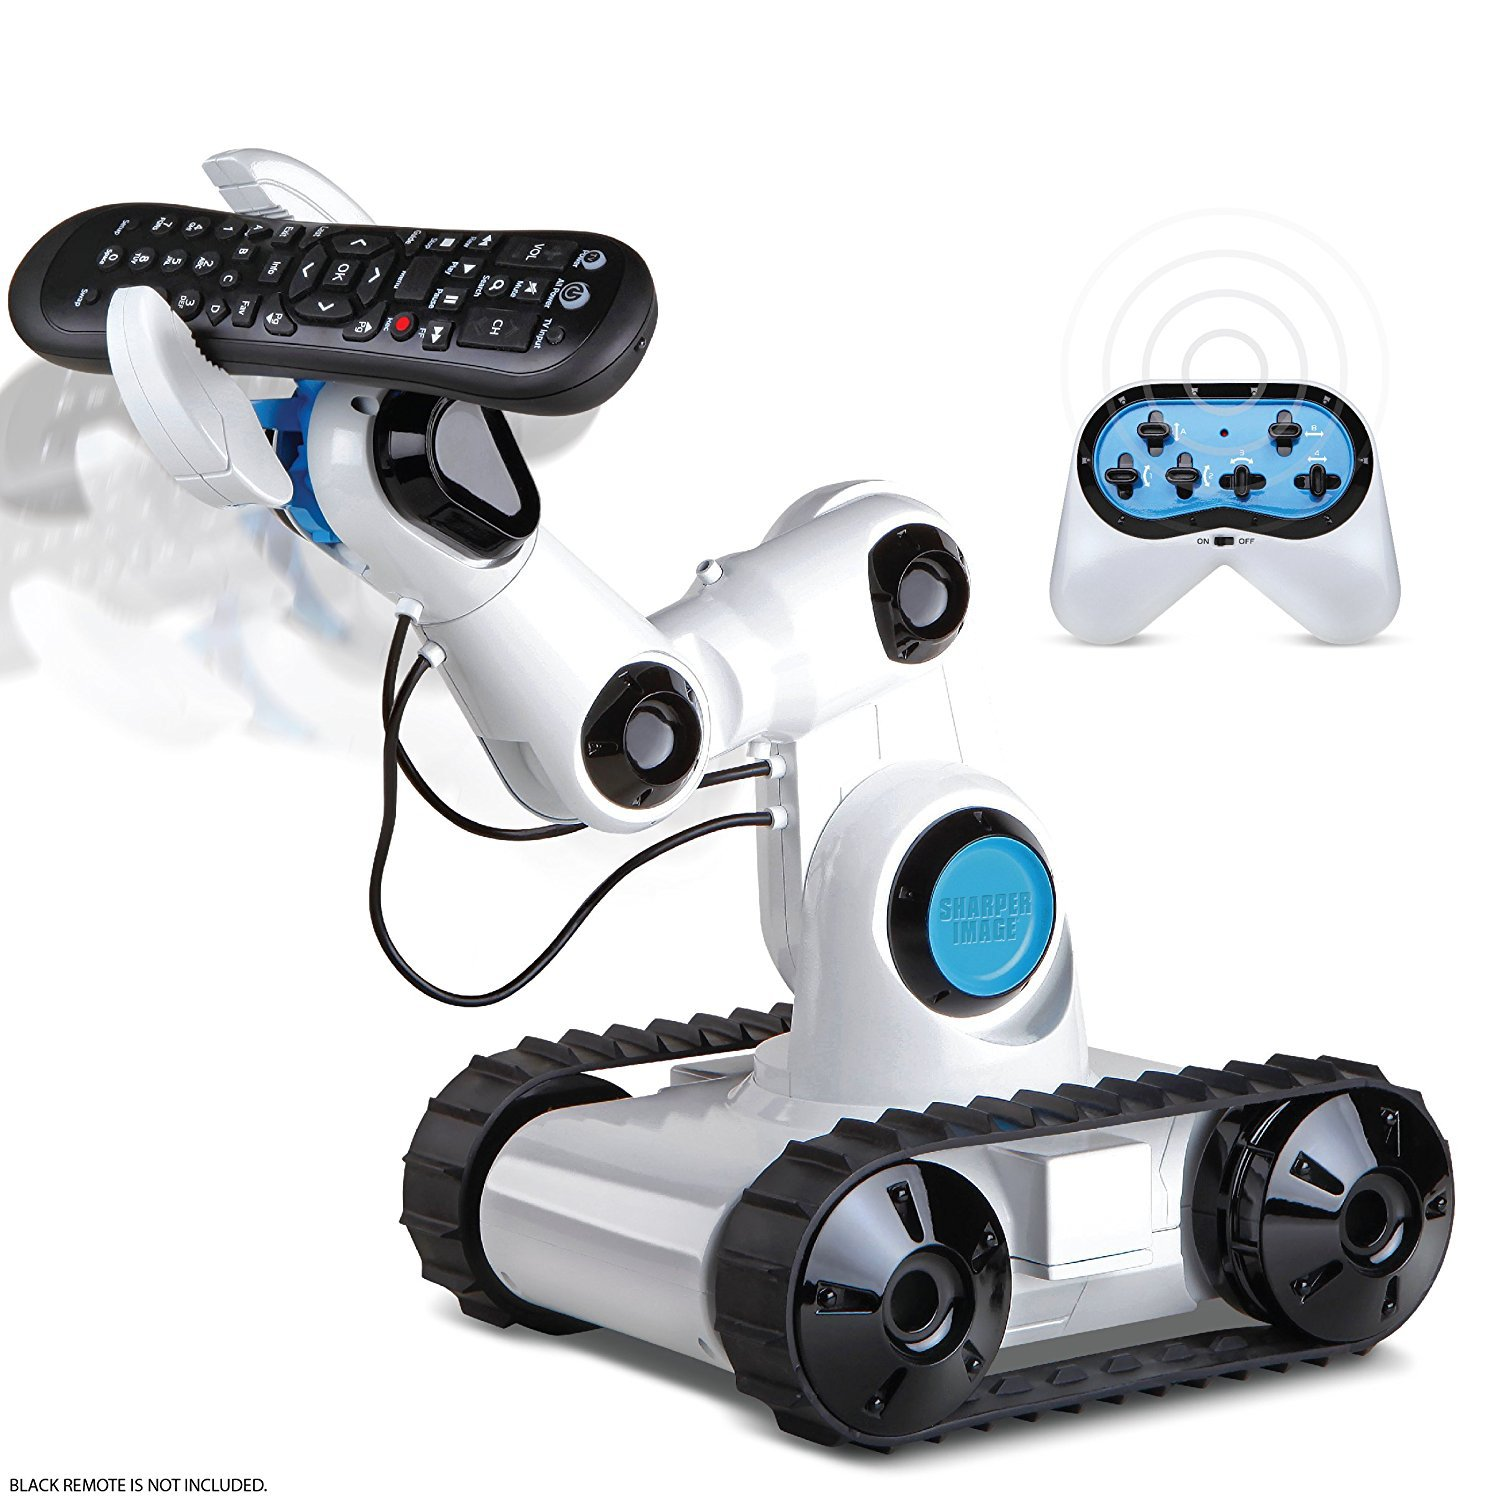 SHARPER IMAGE Full Function Wireless Control Robotic Arm Toy with Built-in LED Spotlight Jumbo Claw Grip & Tank Tread Wheels, 2.4GHz Long Range Battery-Operated RC, Best STEM Gift for Boys & Girls by Sharper Image (Image #1)